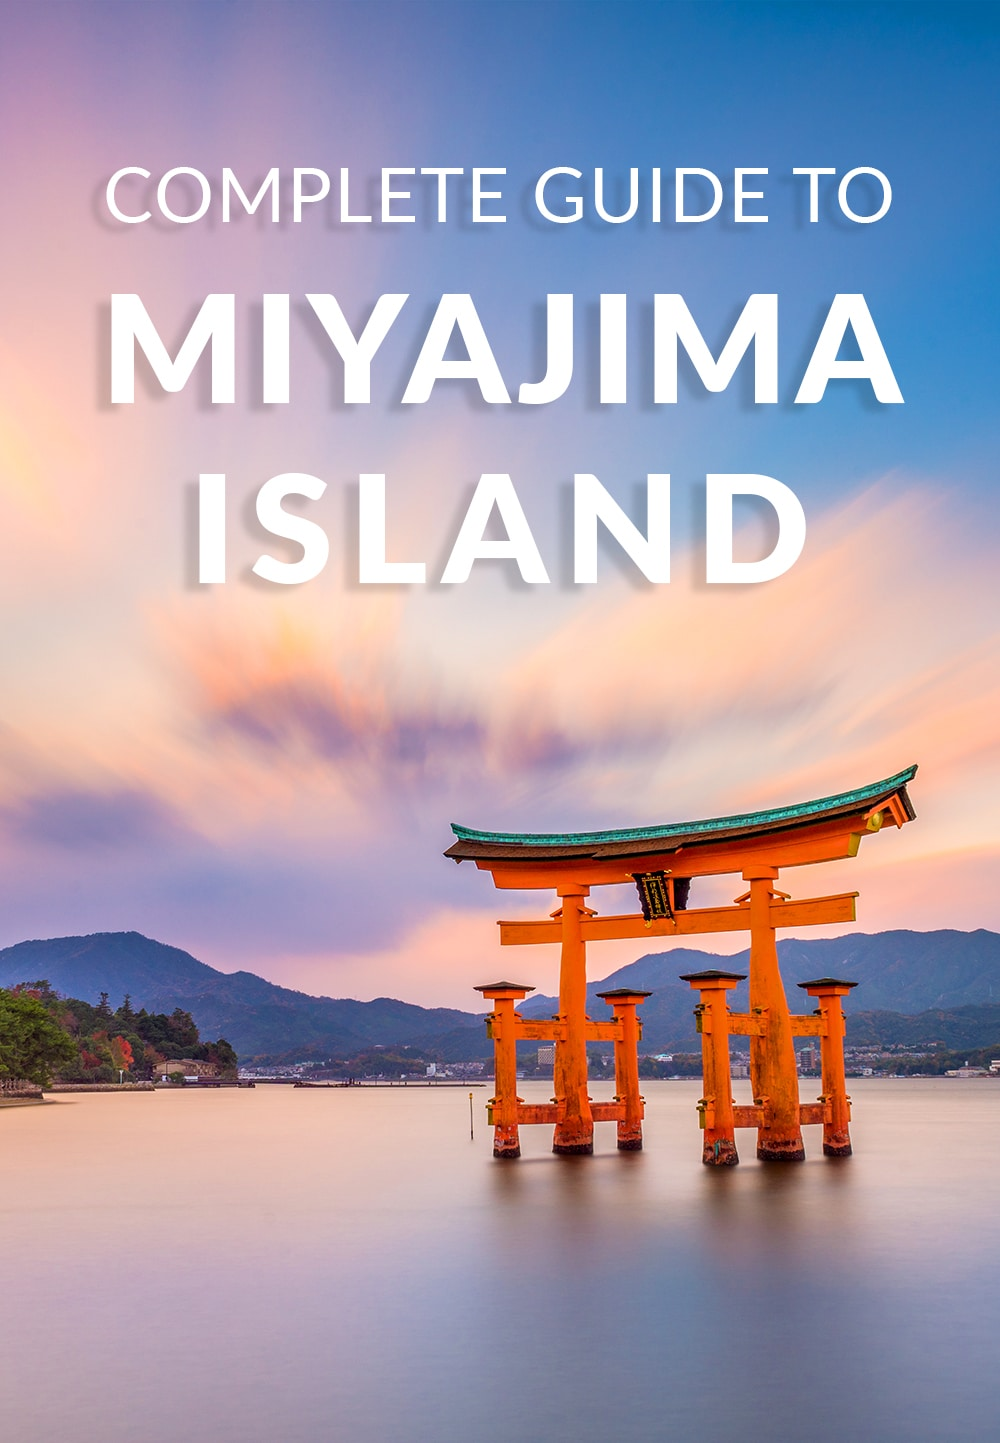 As one of Japan's top sites, a day trip to Miyajima Island to see the famous floating Itsukushima Torii Gate is a must while in Japan. #miyajima #Japan #travel #torii